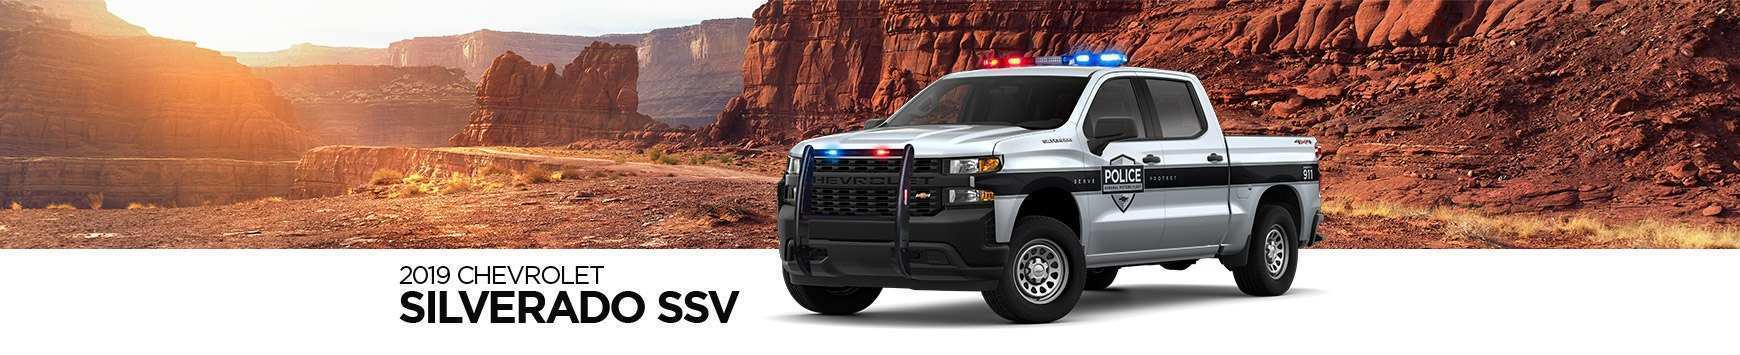 74 Gallery of 2019 Chevrolet Police Vehicles Speed Test with 2019 Chevrolet Police Vehicles